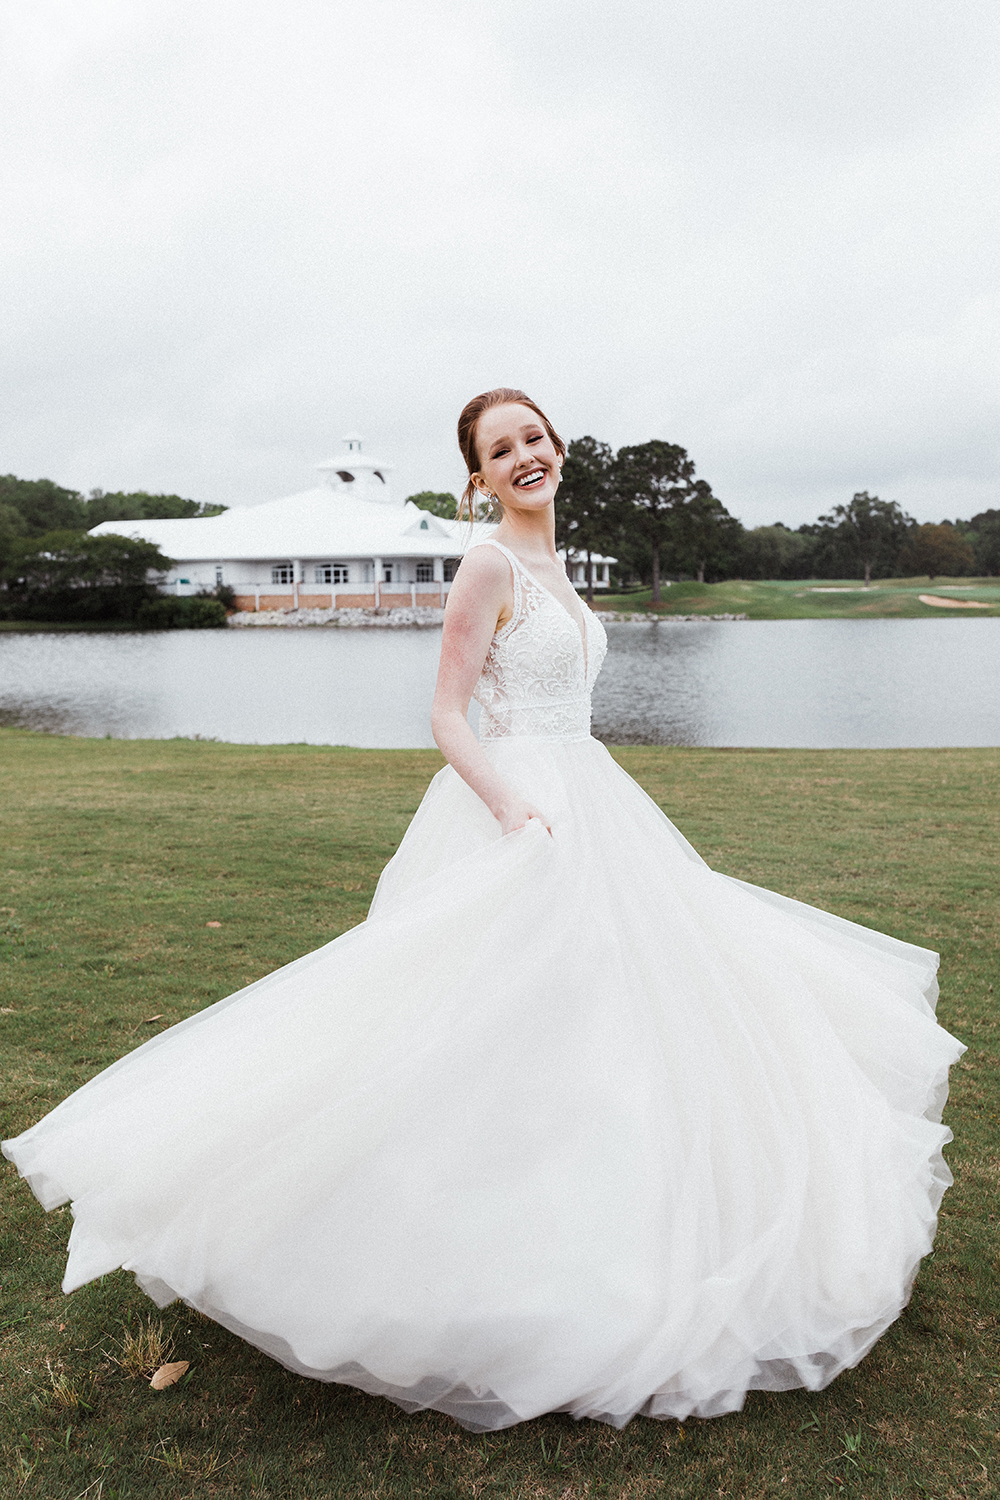 Bride Twirling in Gown | photo by Ash Simmons Photography | featured on I Do Y'all